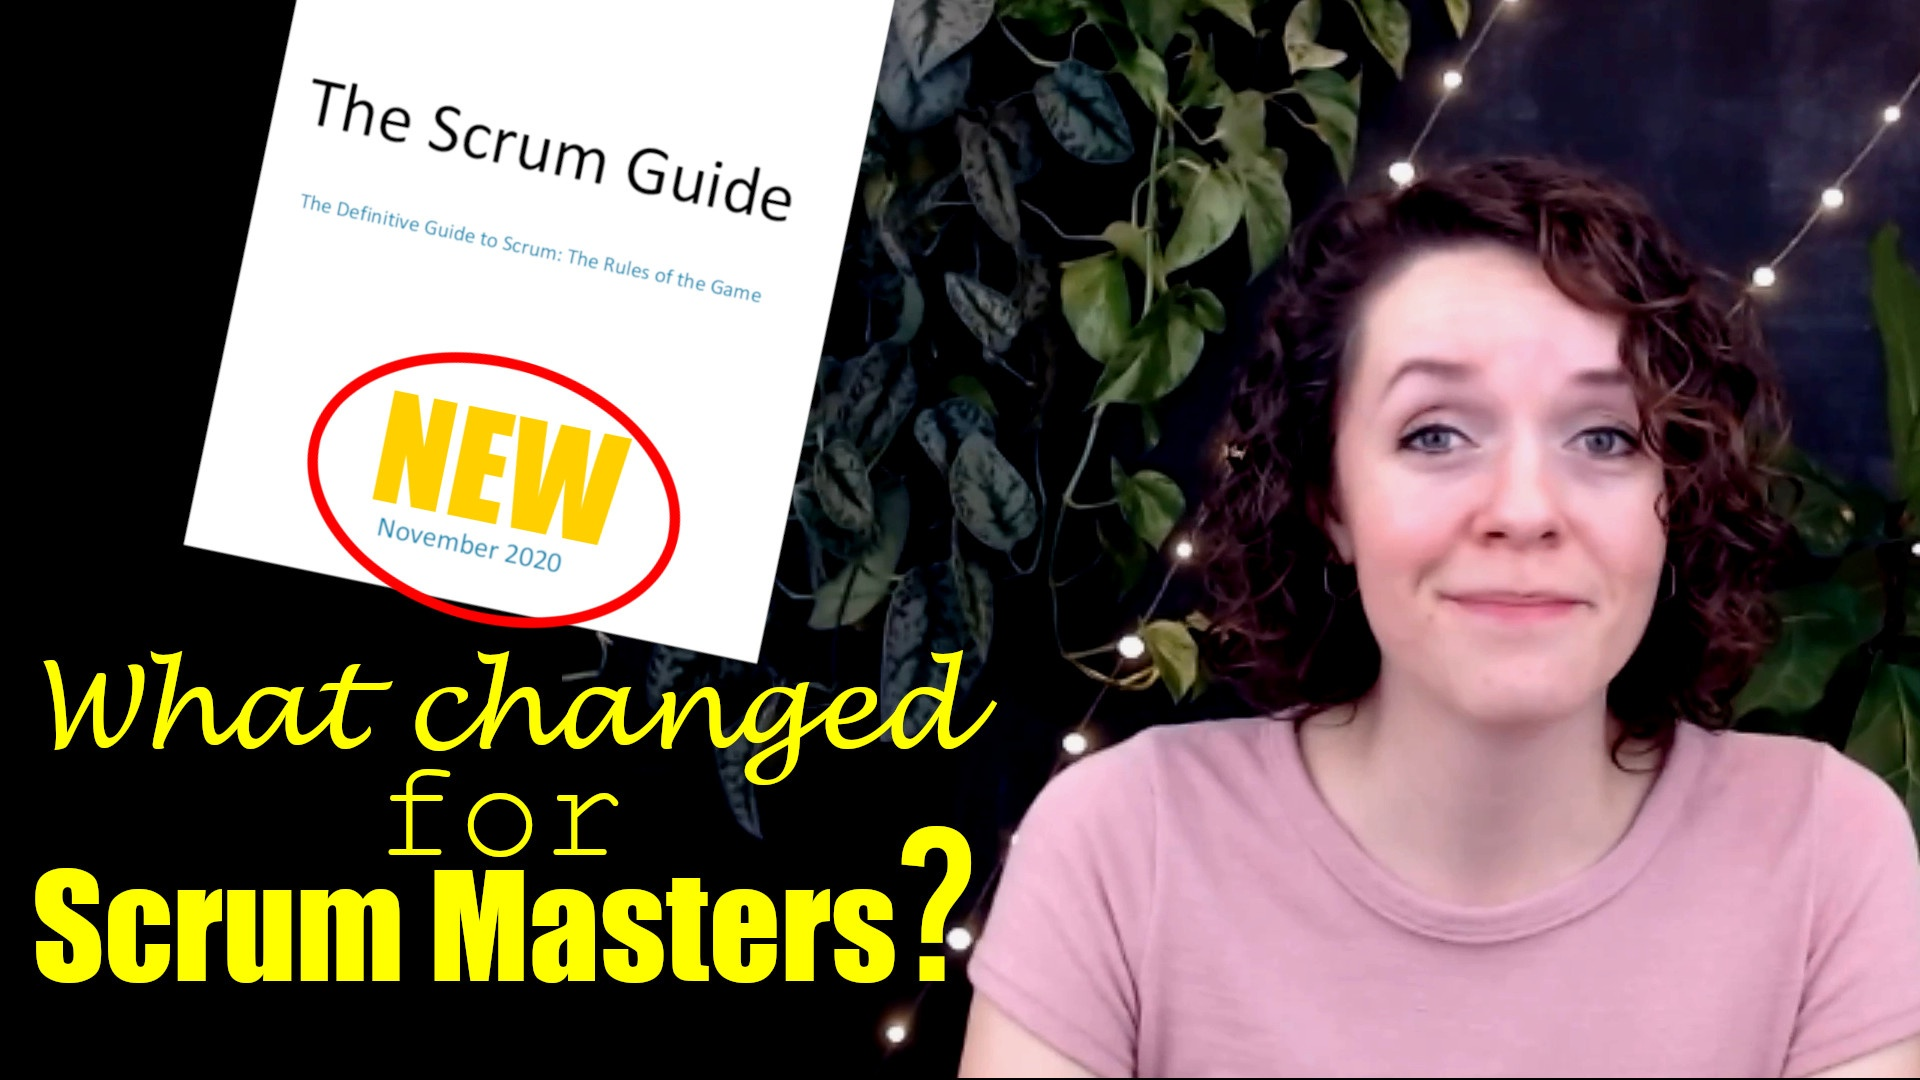 3 Key Points for Scrum Masters in the new Scrum Guide 2020